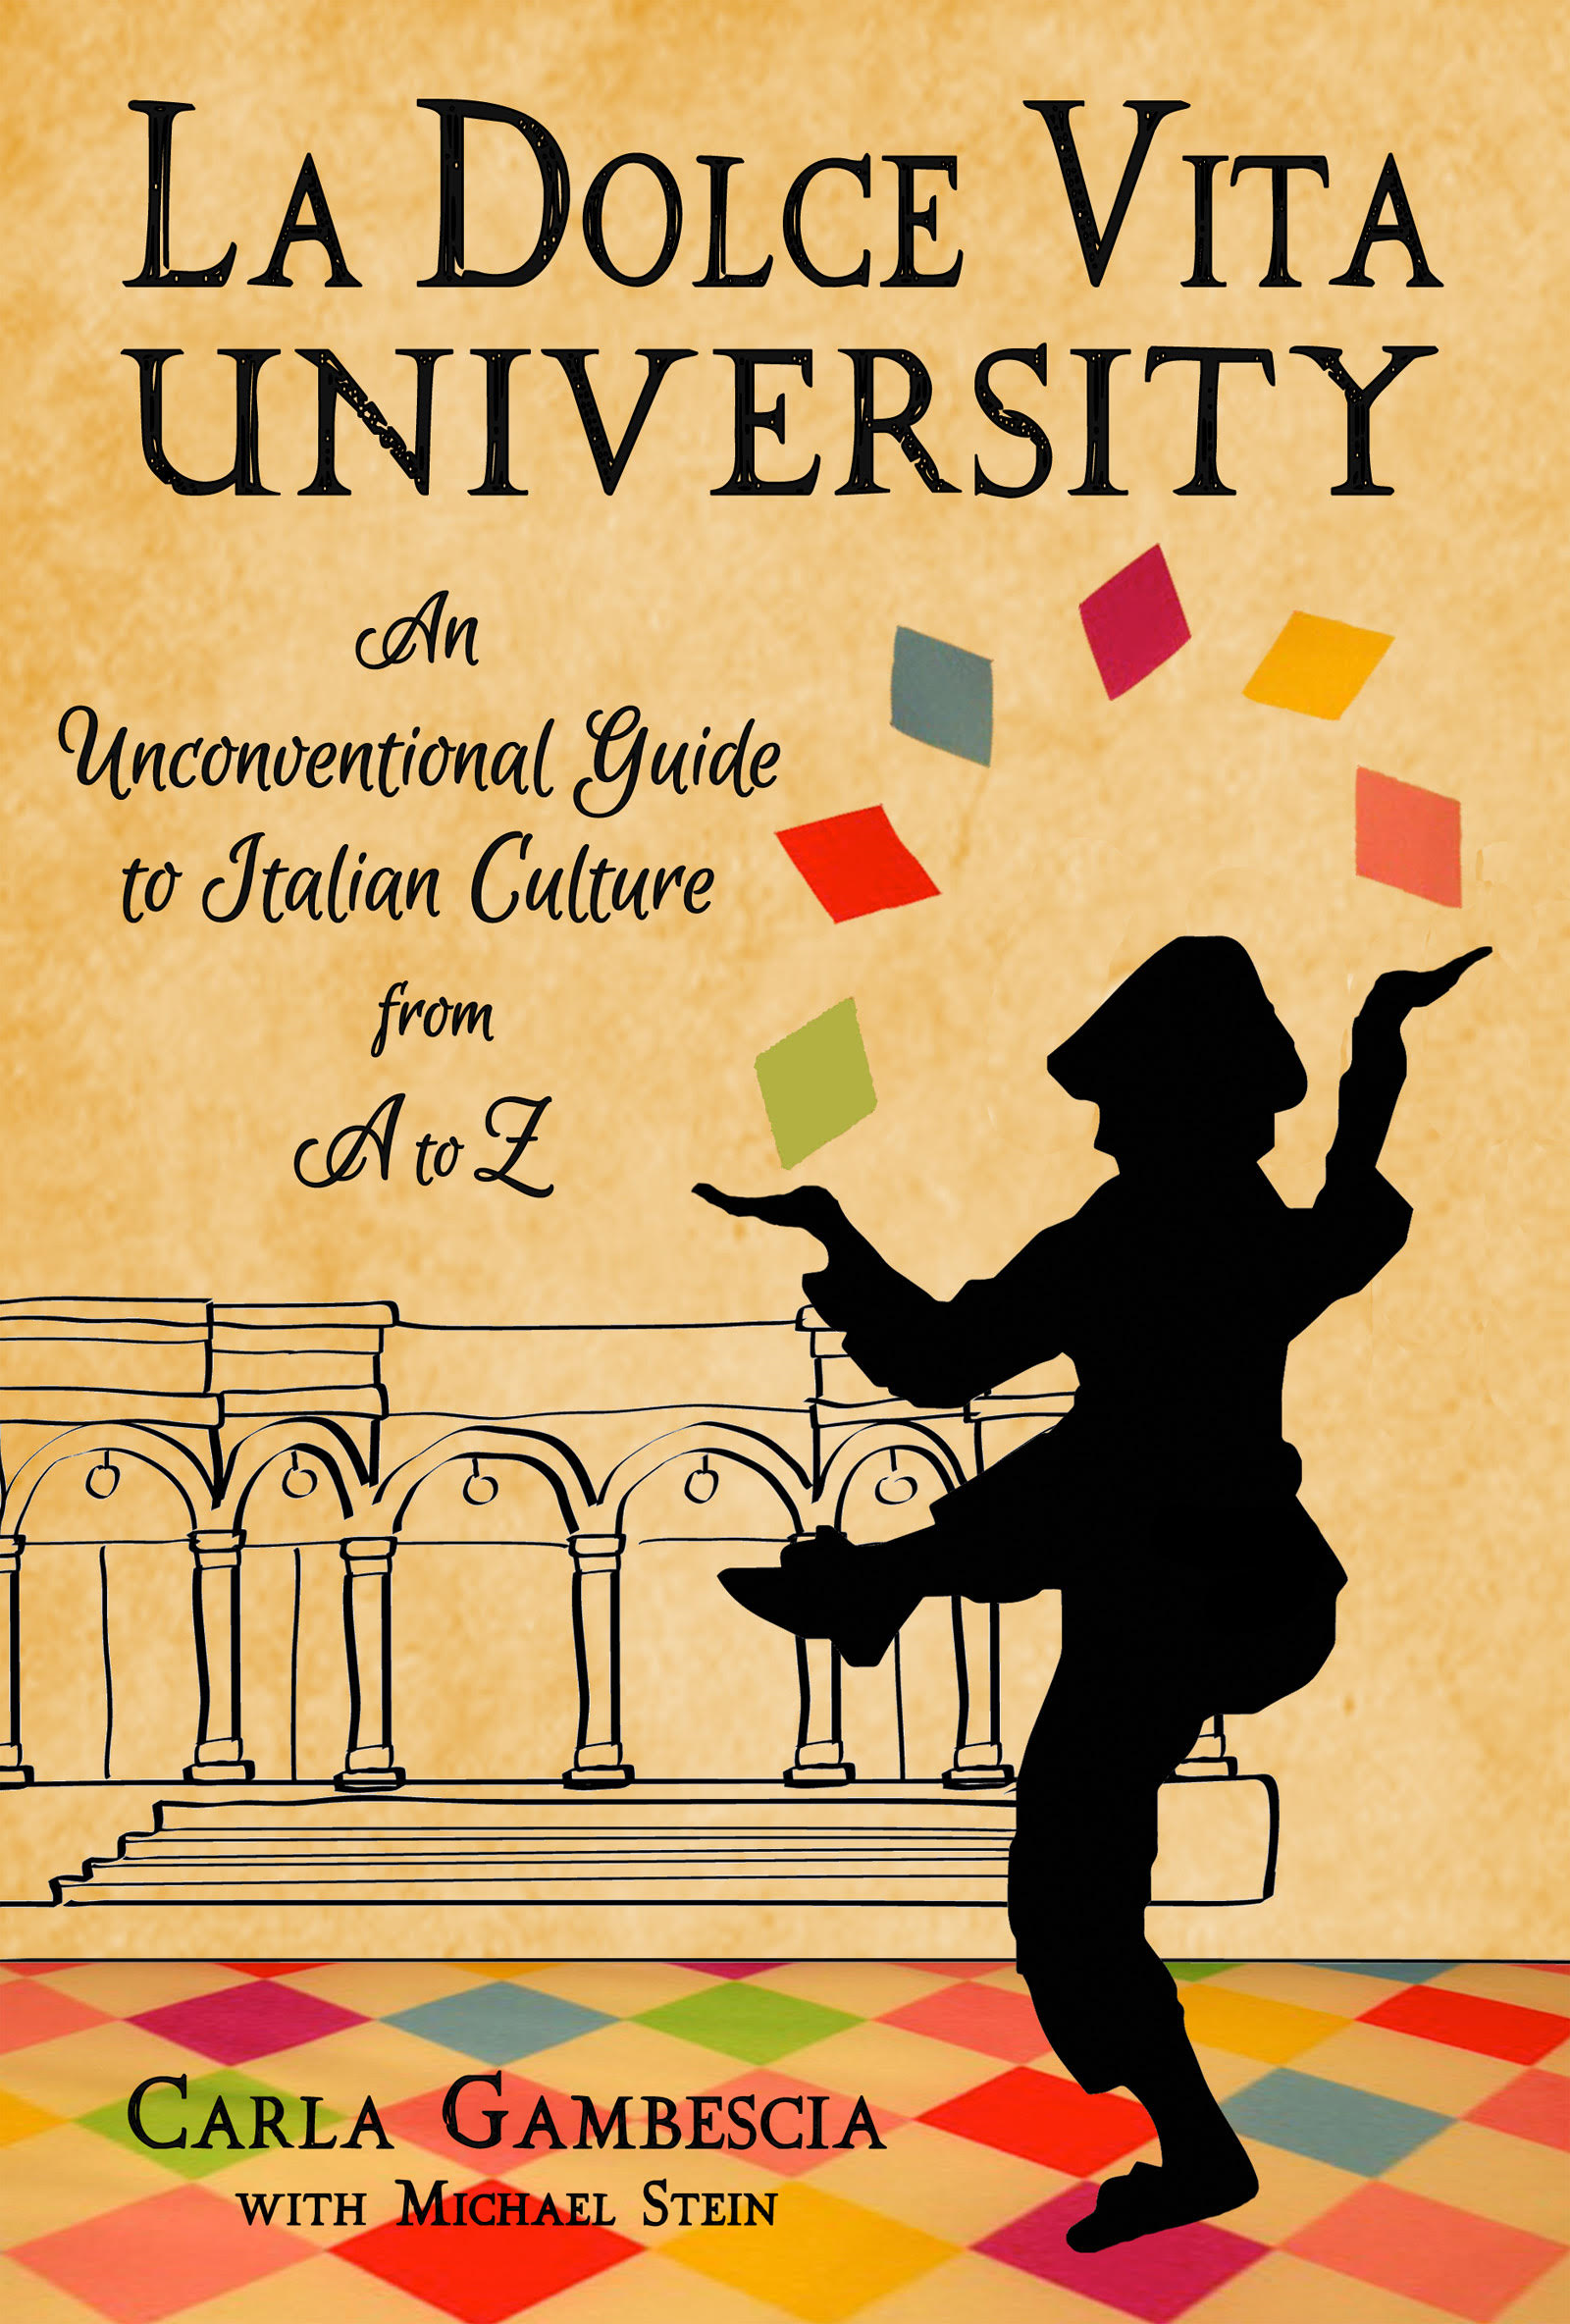 POSTPONED! LA DOLCE VITA UNIVERSITY - An Unconventional Guide to Italian Culture from A to Z - by Carla Gambescia